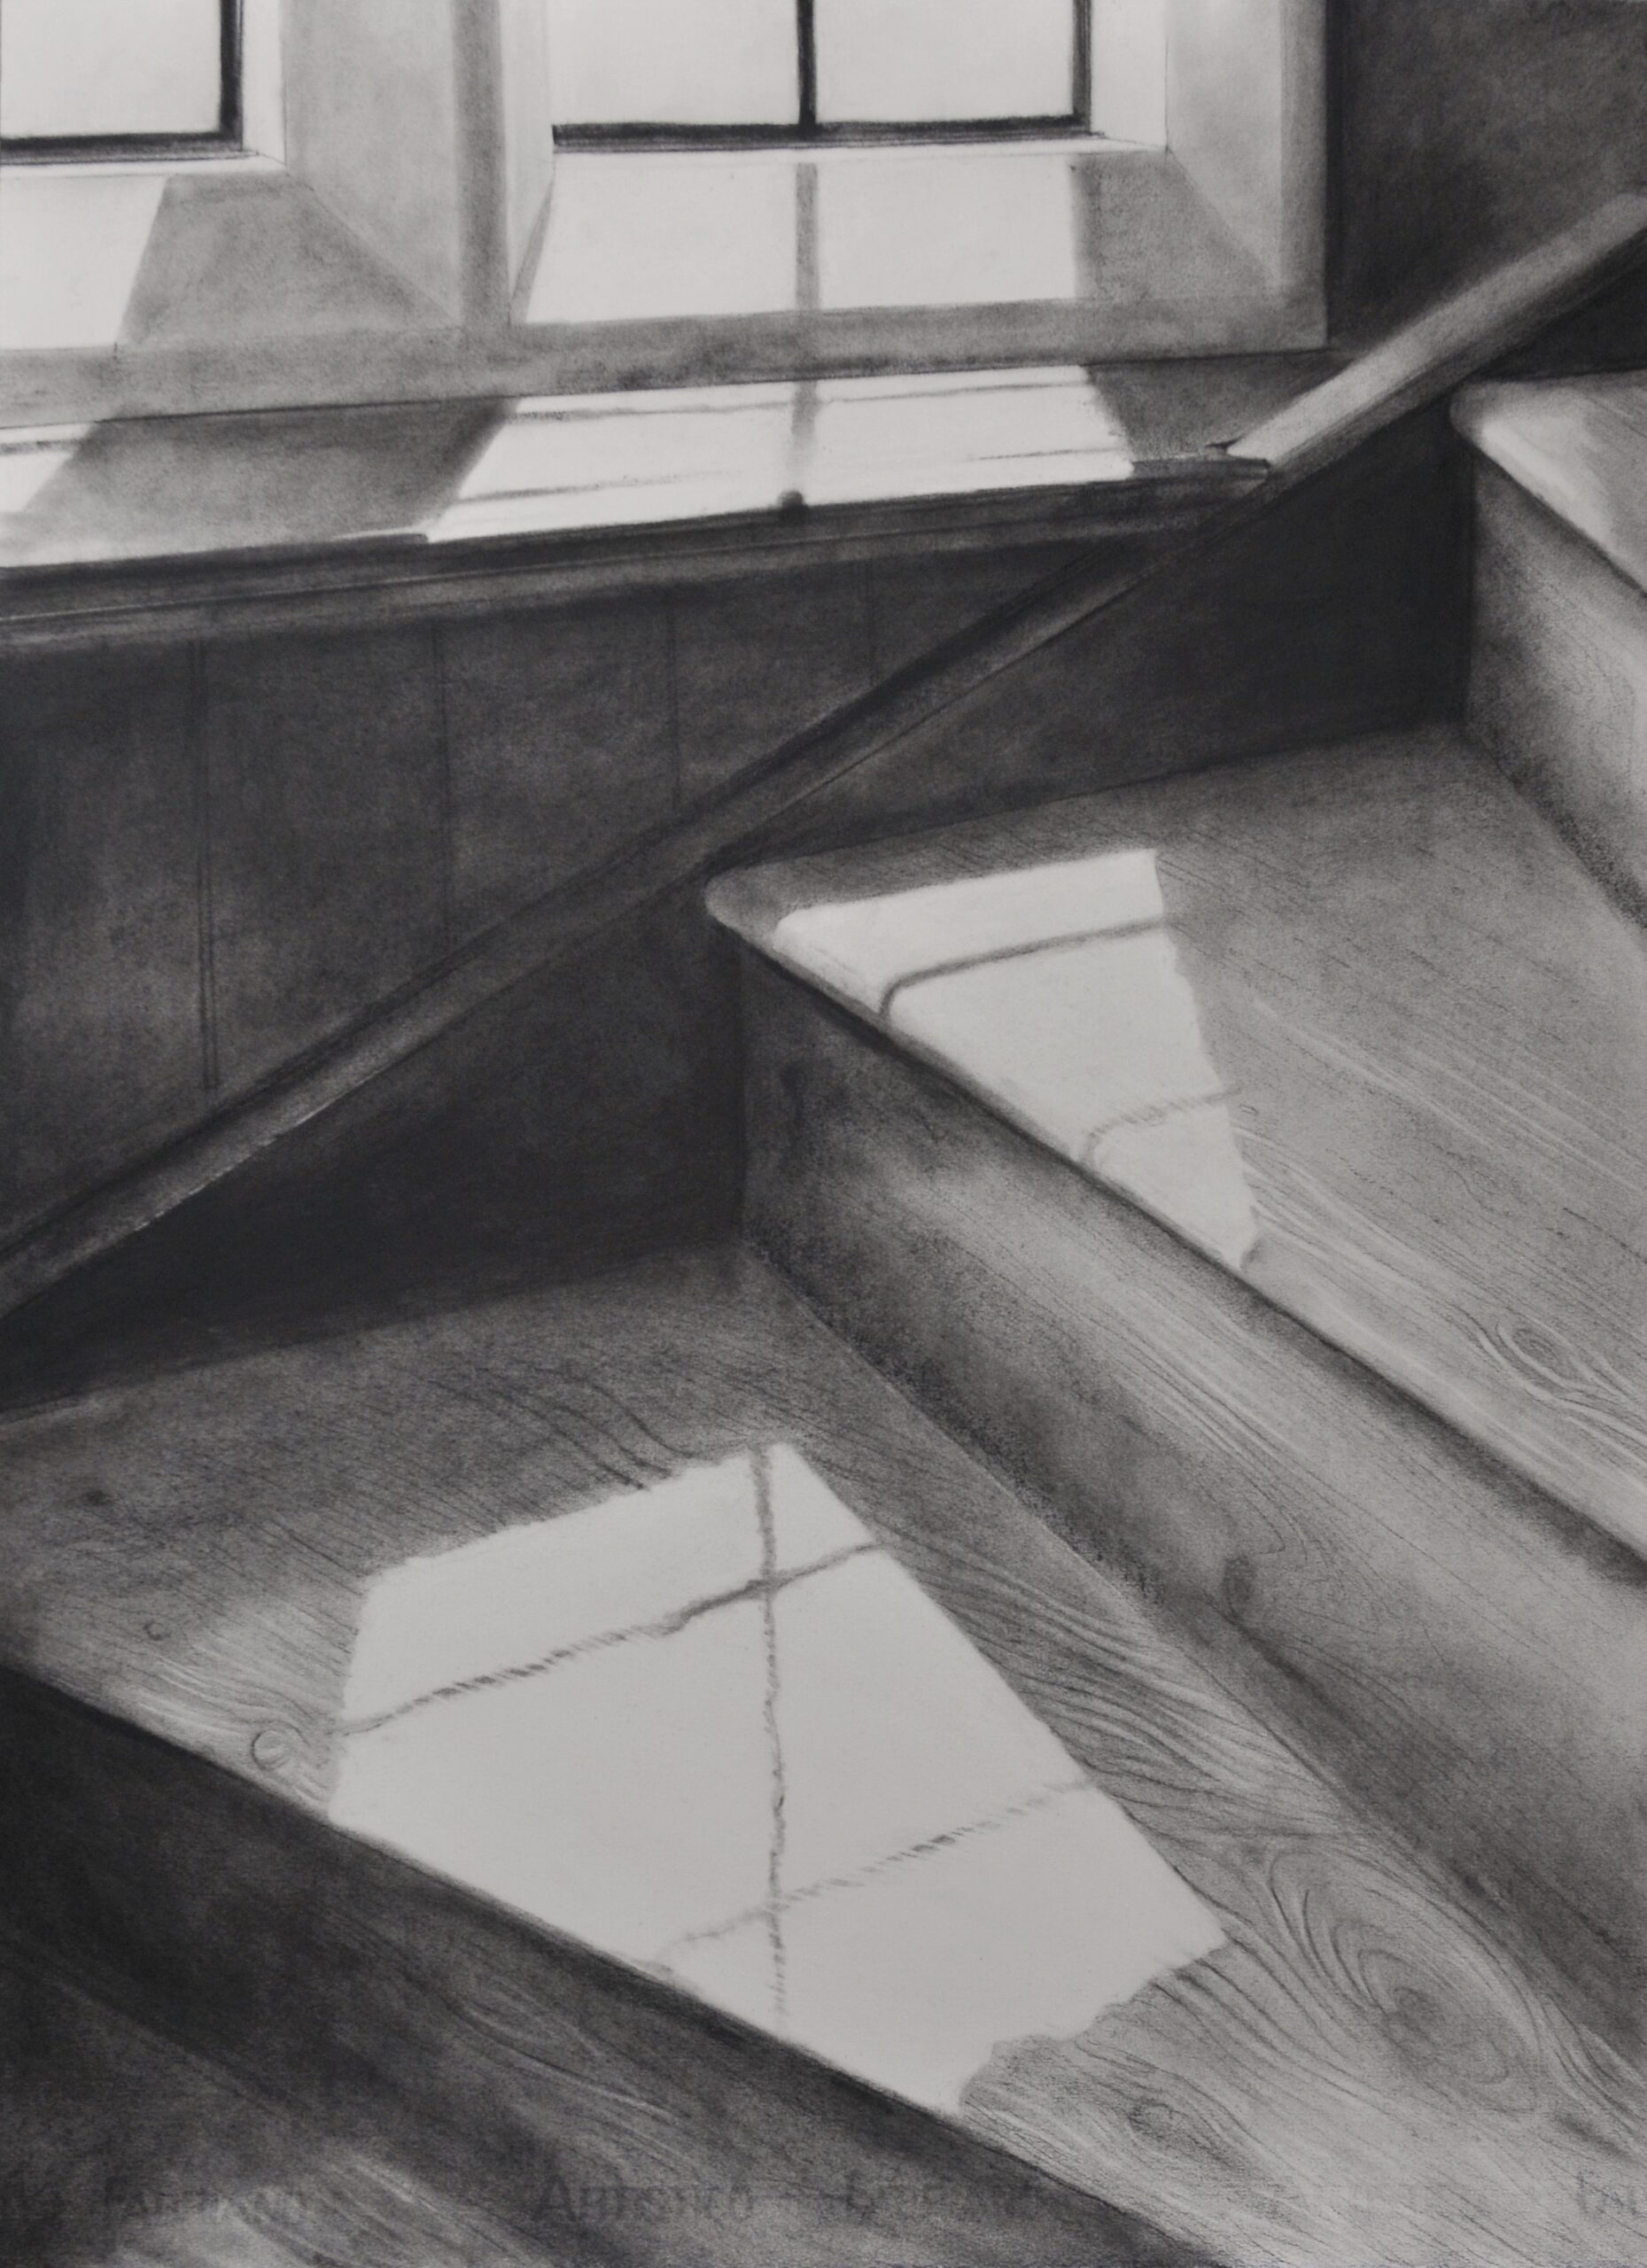 Charcoal drawing of the stairwell at Pugin's House Margate